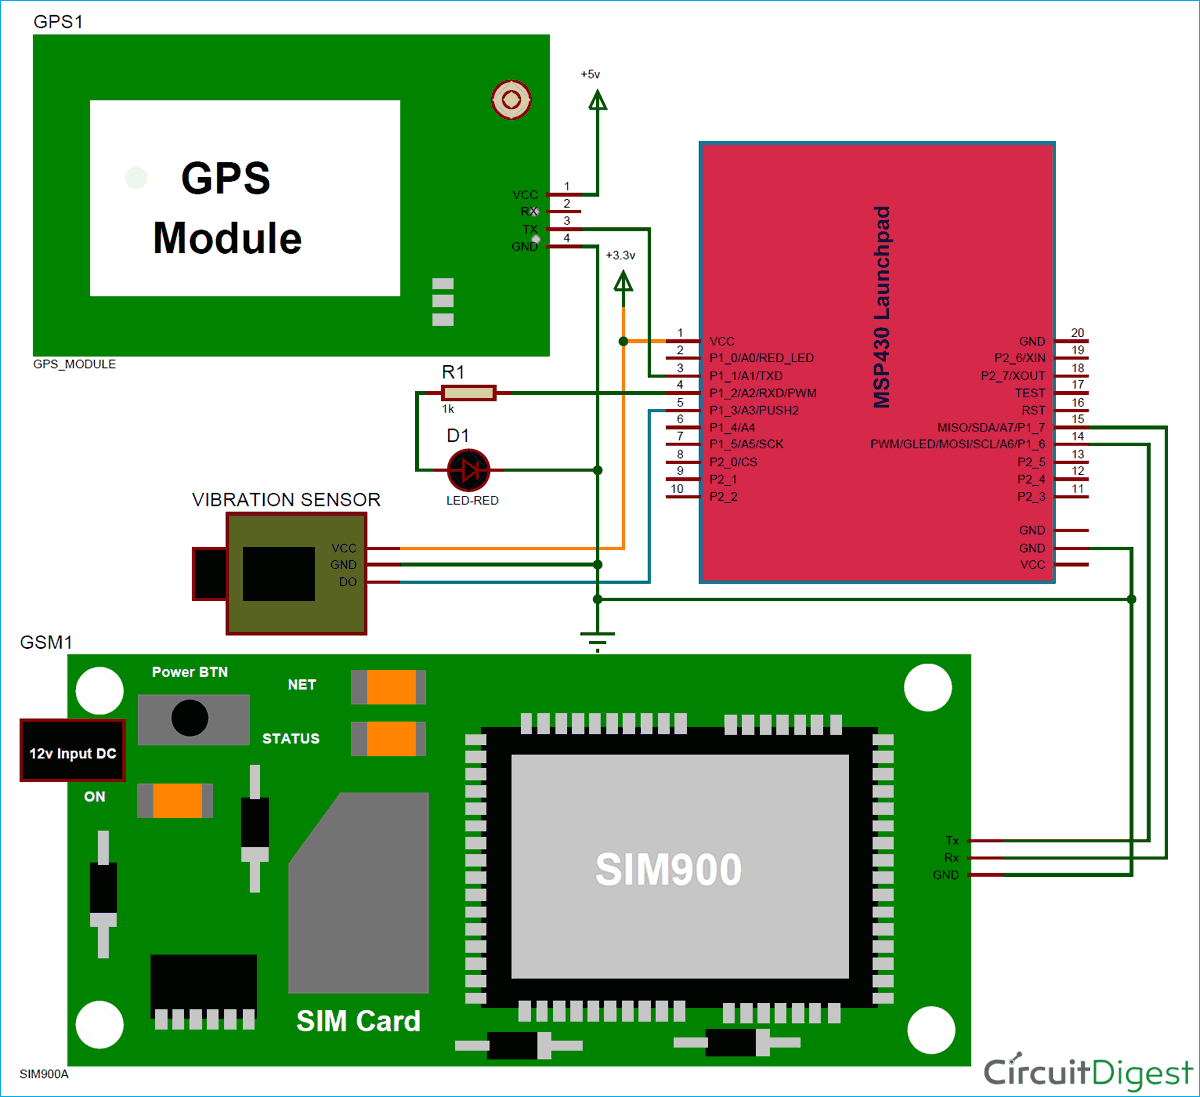 circuit diagram for vehicle tracking and accident alert system using msp430and gps [ 1200 x 1097 Pixel ]